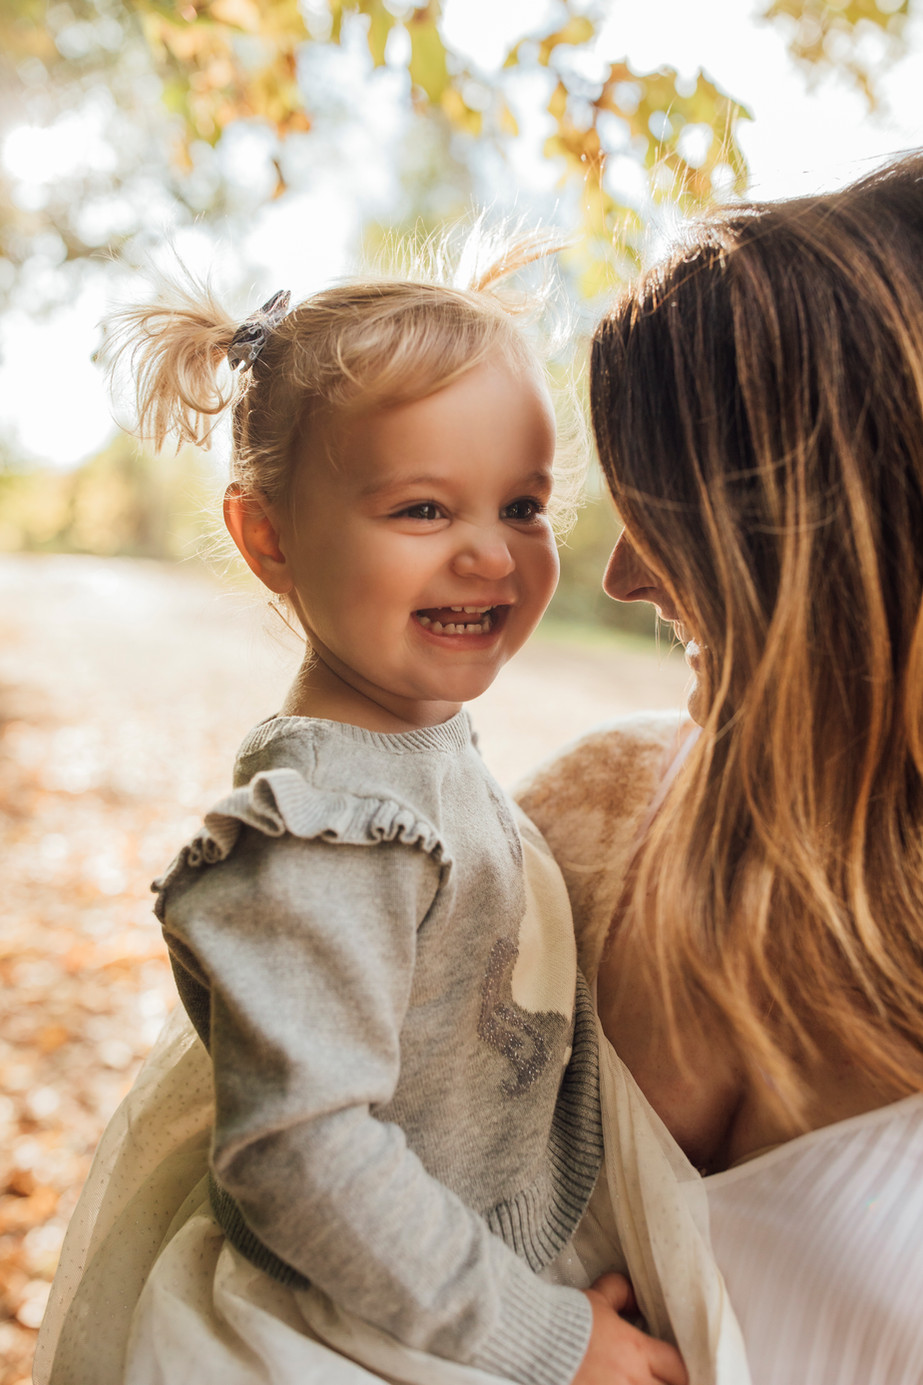 A Letter To My First Born: You Will Always Have My Love